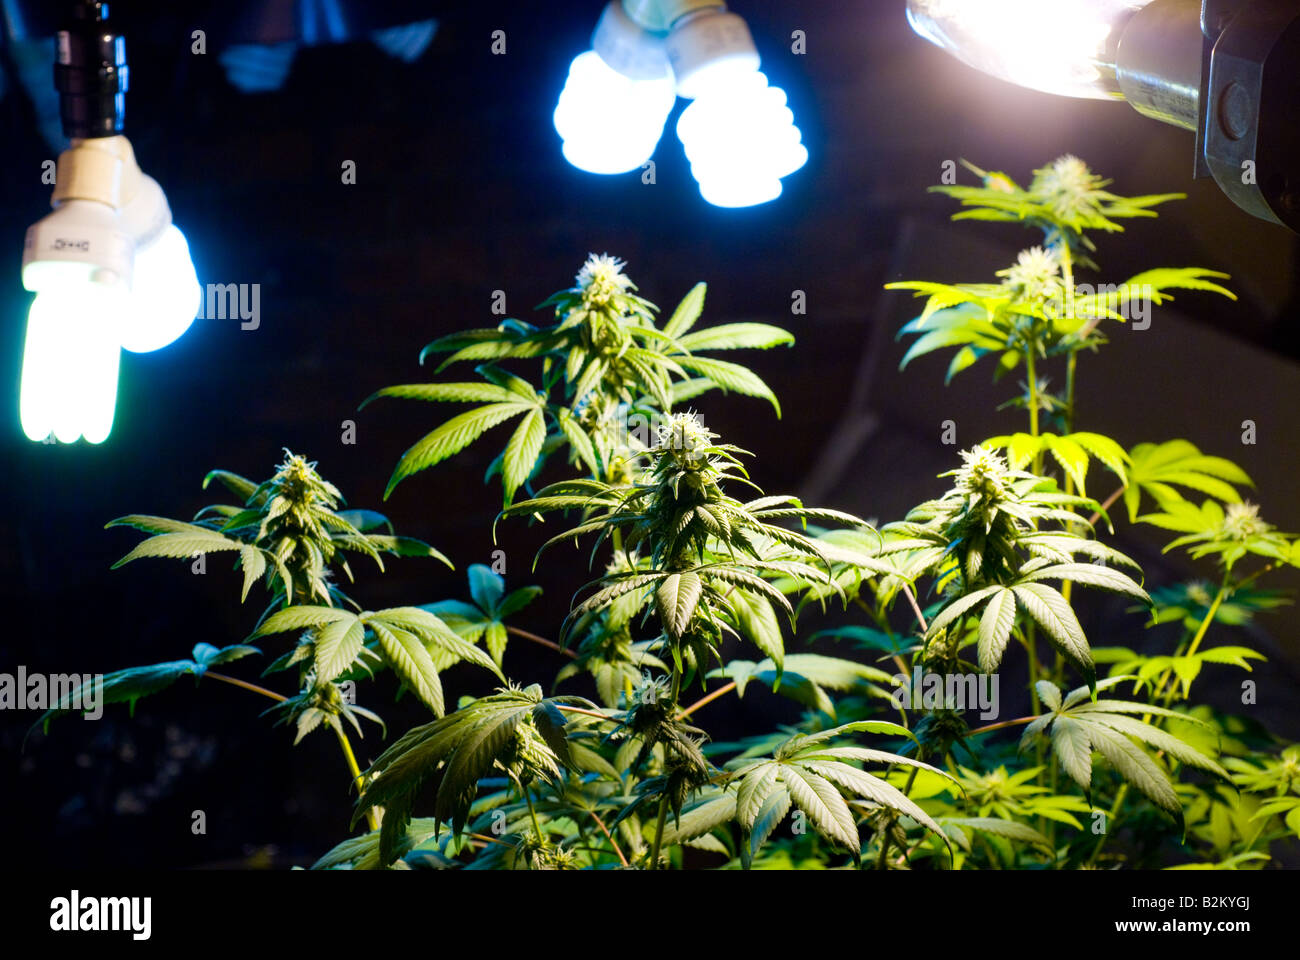 Illegal indoor Marijuana growing with budding pot plants with indoor grow lights - Stock Image